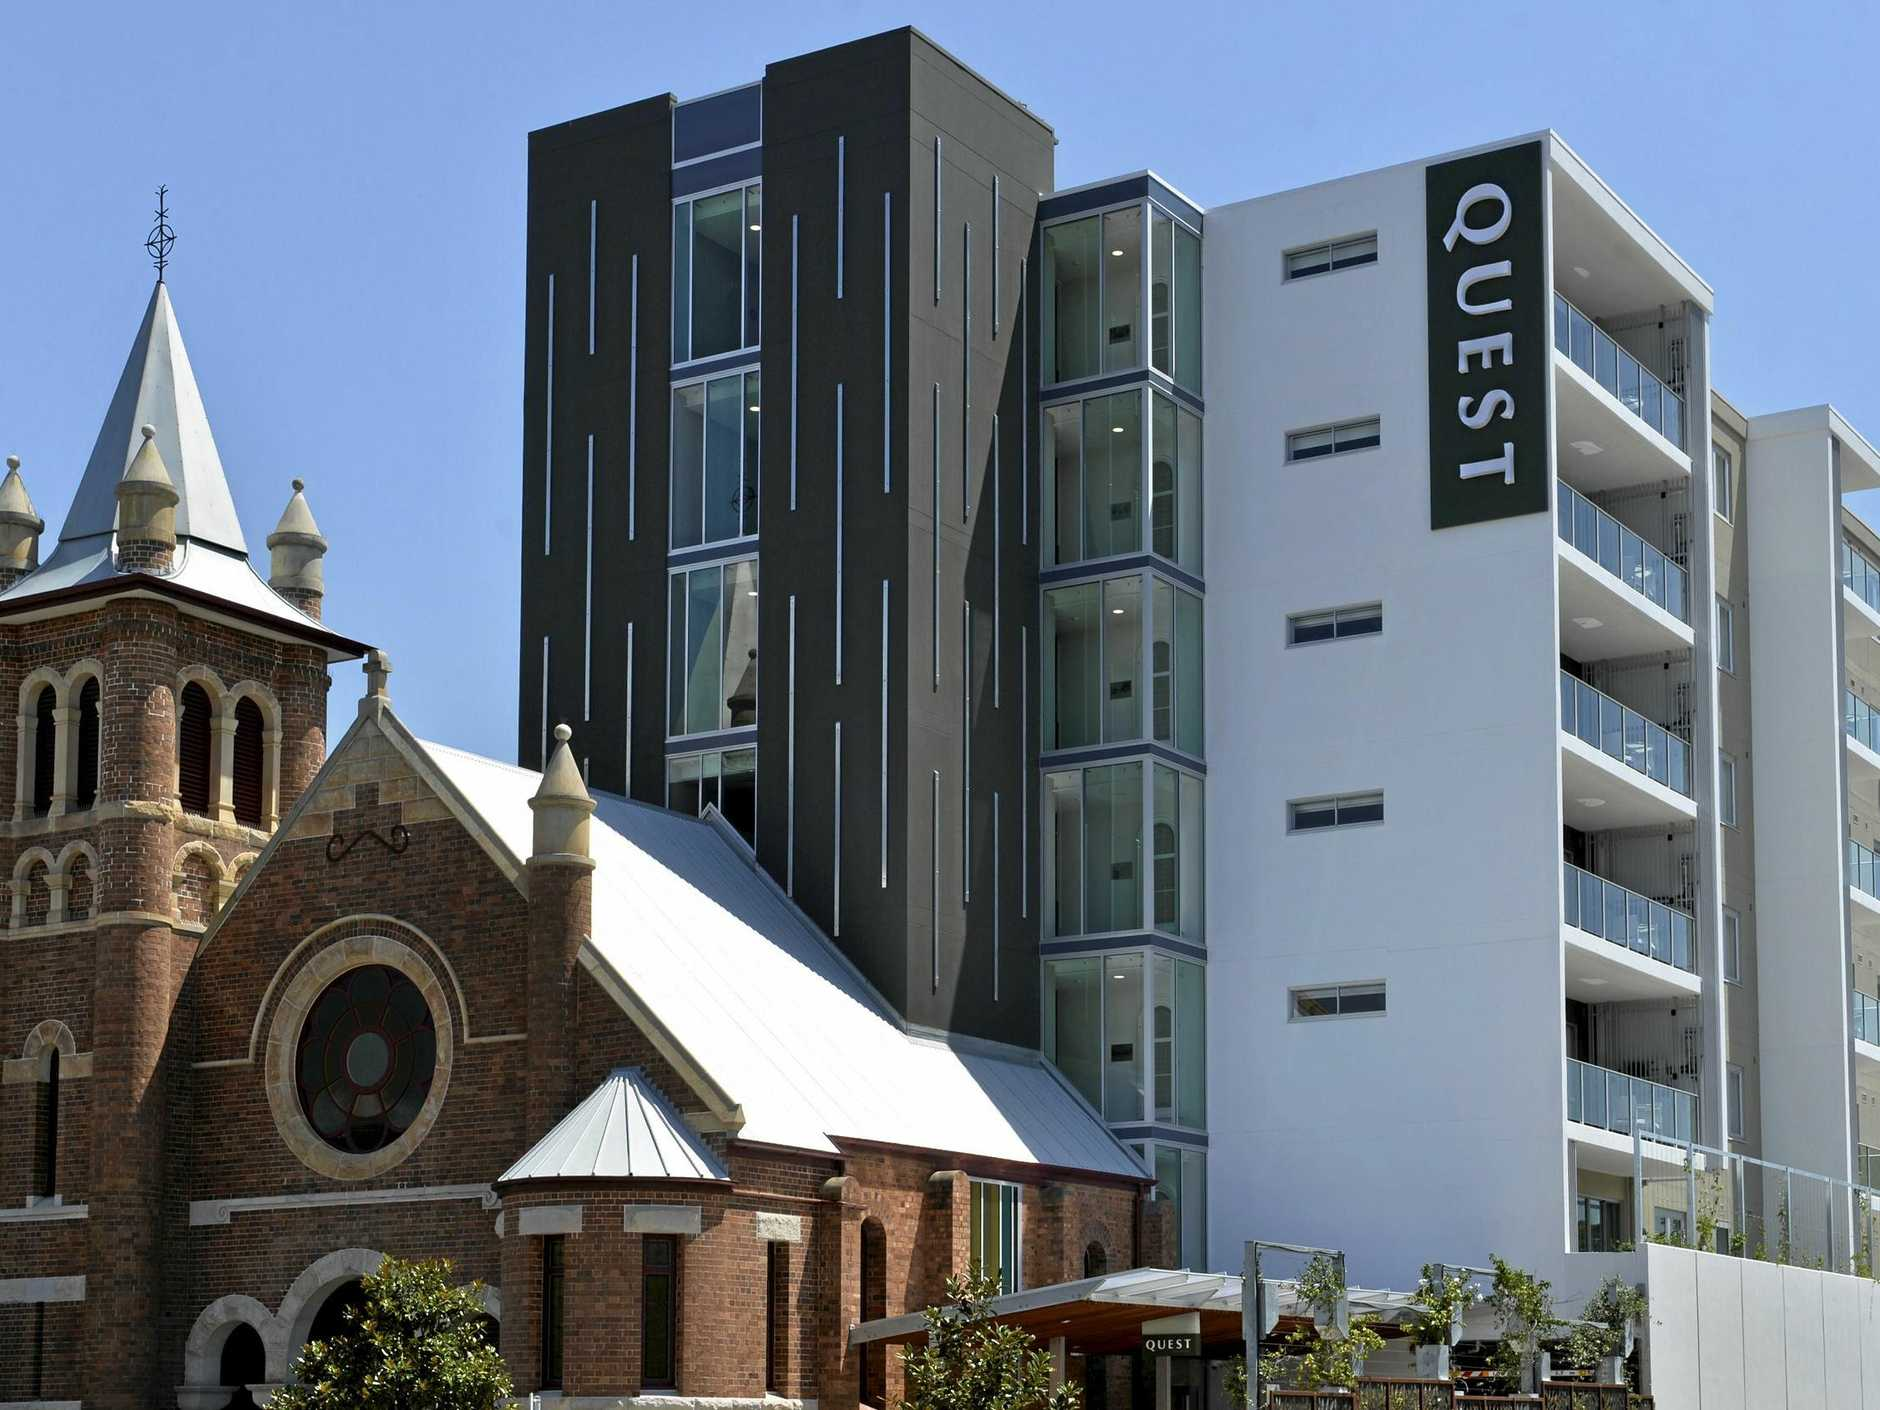 After more than eight months of works, Quest Apartment Hotel has re-opened in Toowoomba.